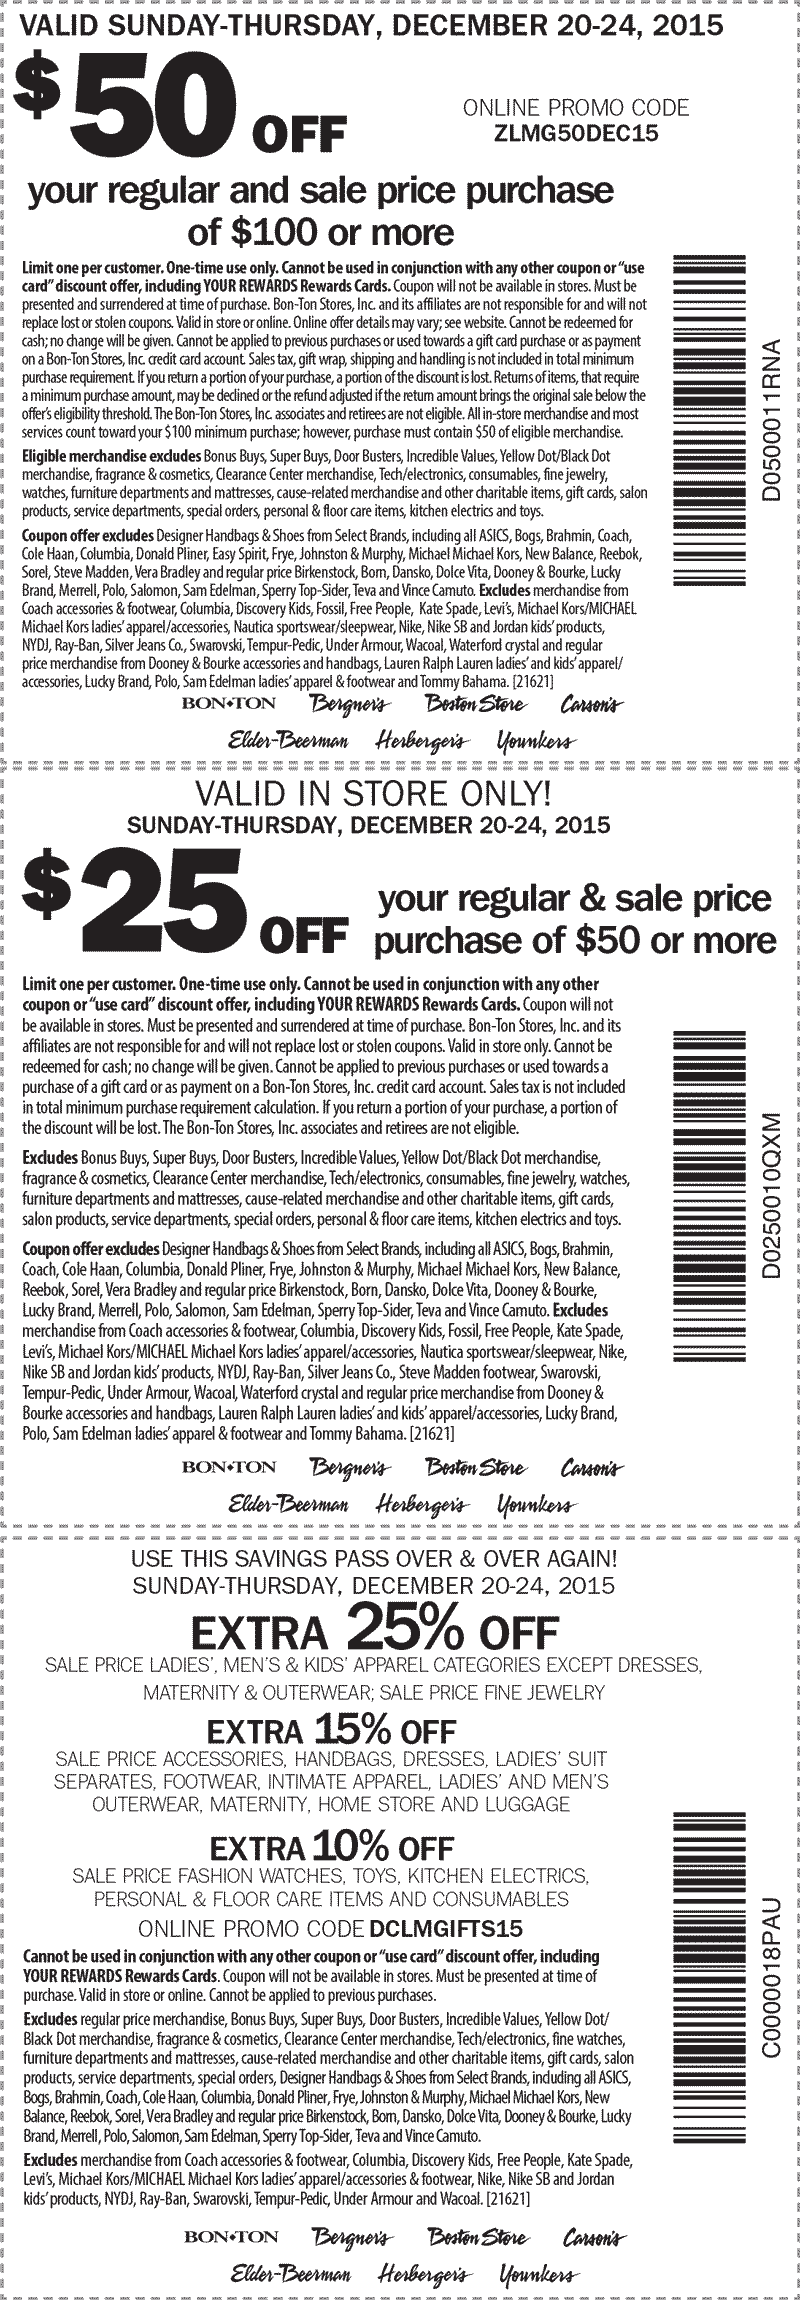 Carsons Coupon December 2016 $50 off $100 & more at Carsons, Bon Ton & sister stores, or online via promo code ZLMG50DEC15